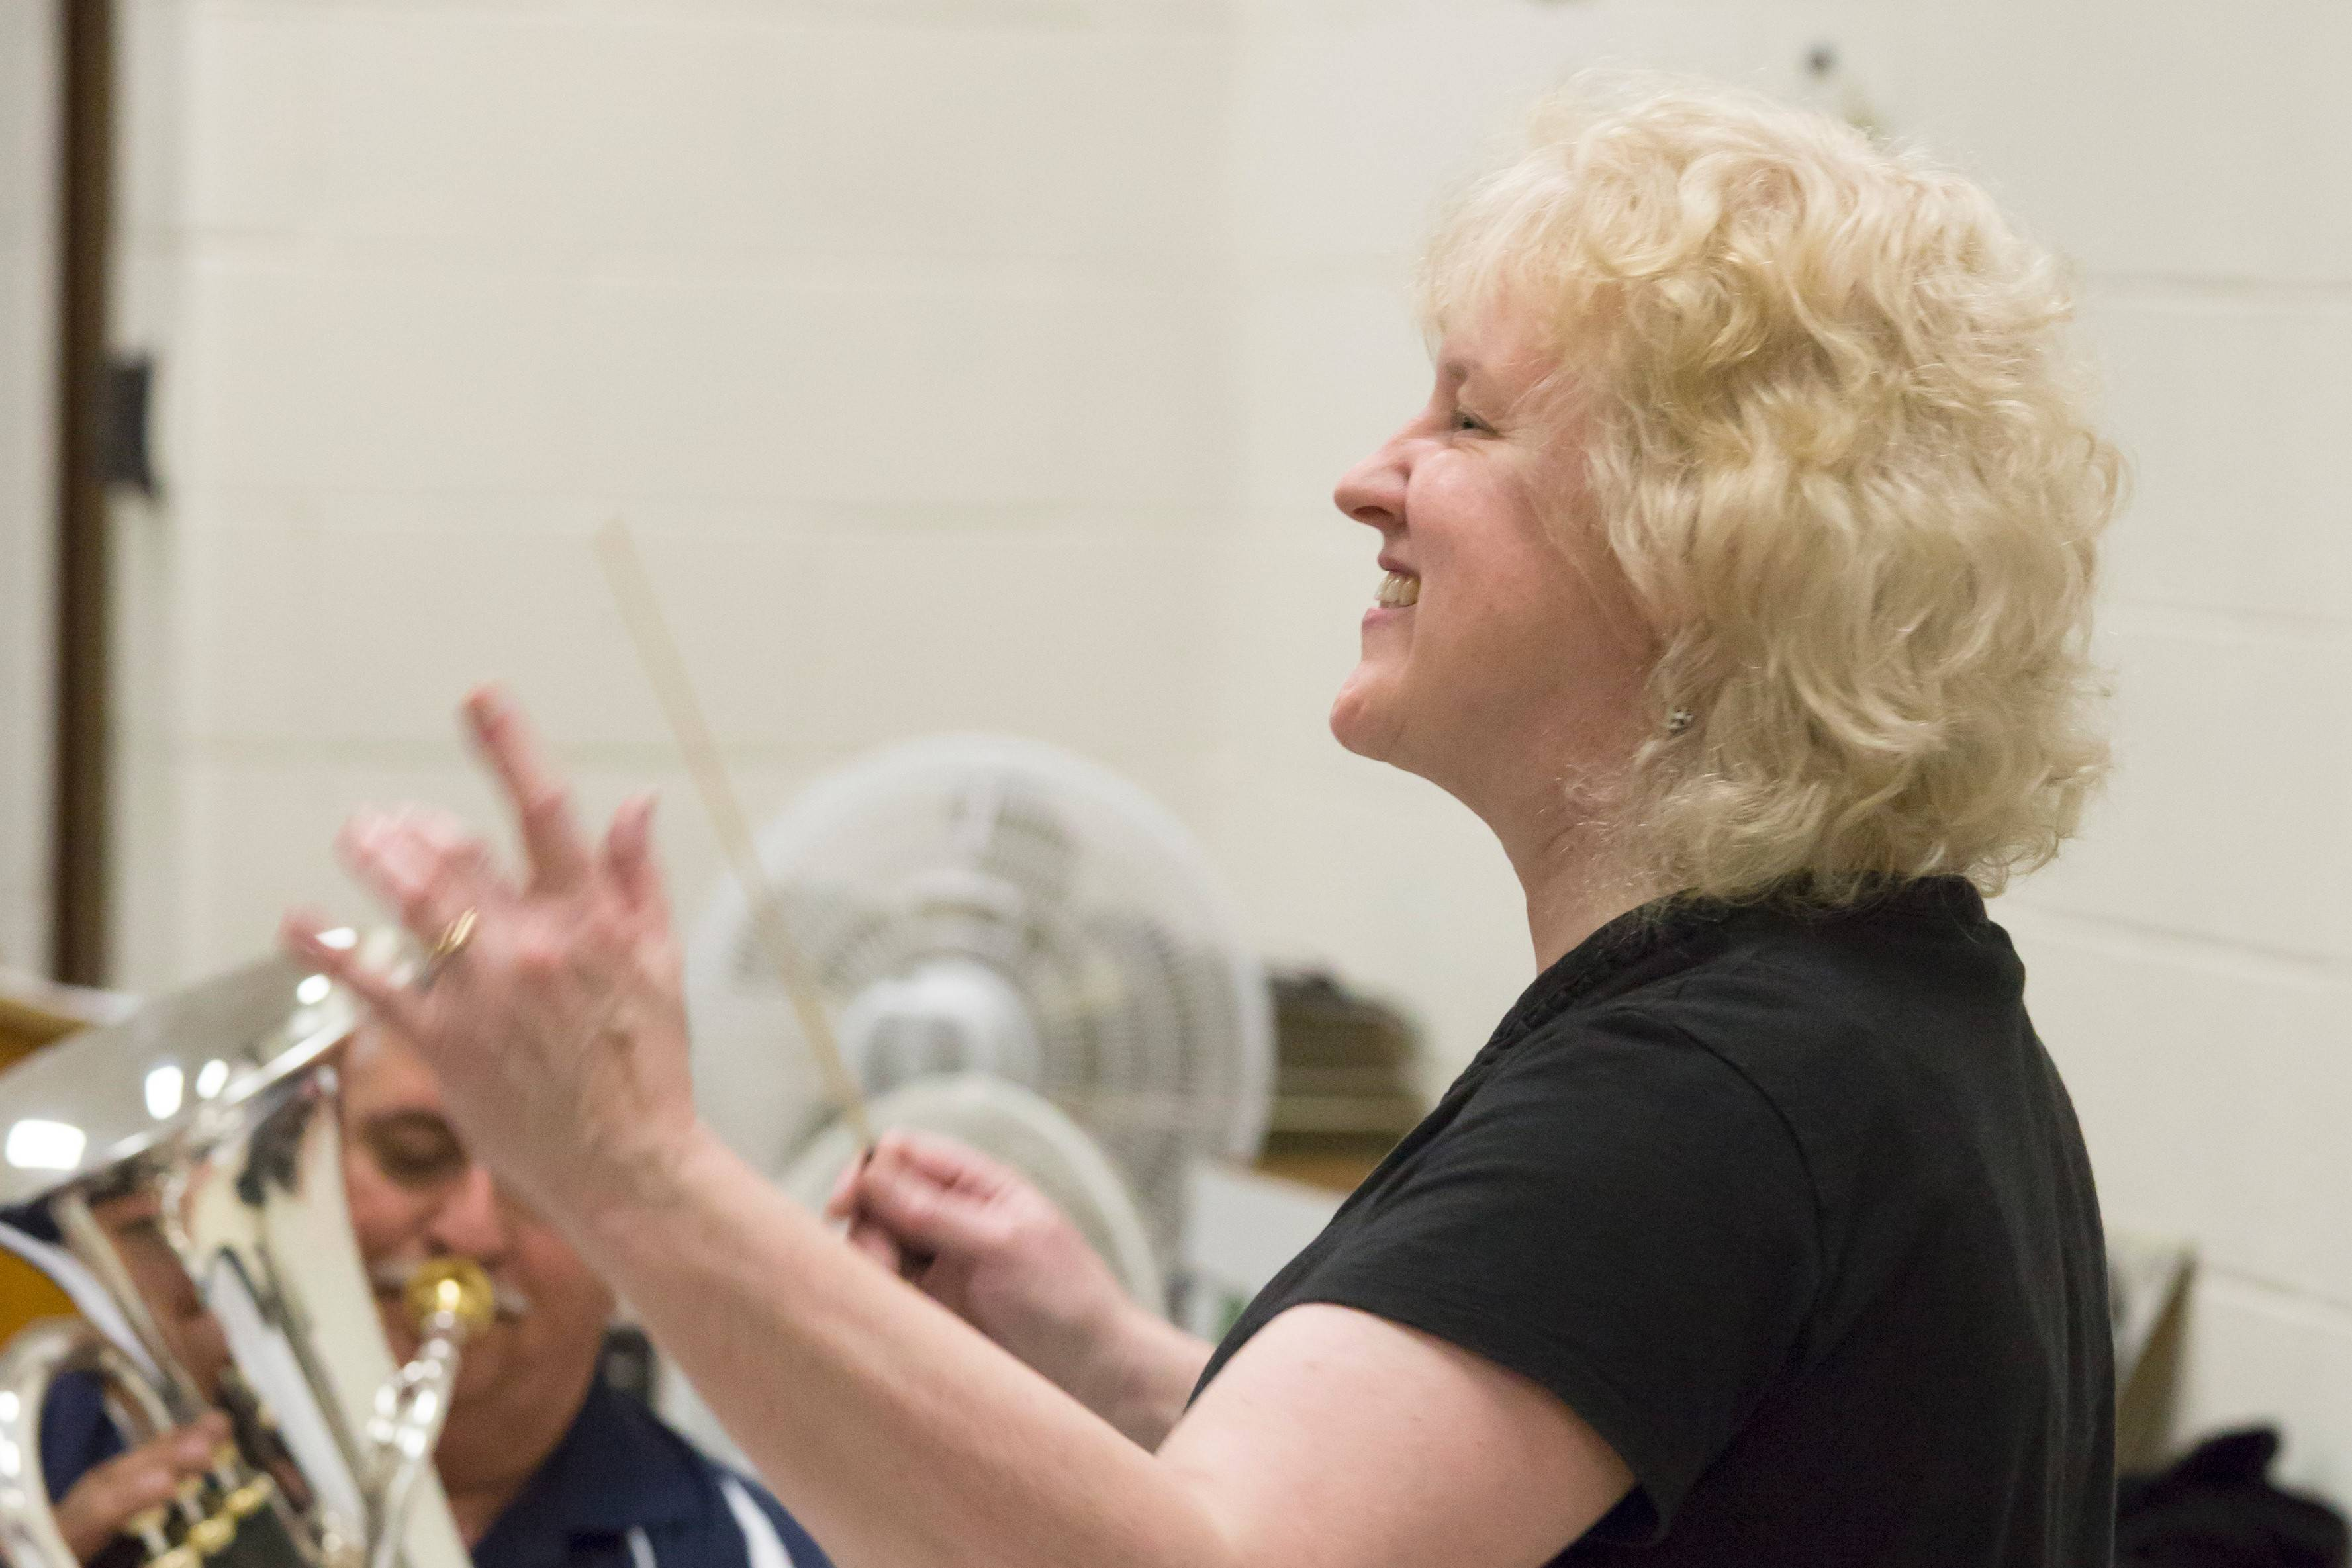 Mary Gingrich, who plays tenor horn, is the other finalist for the Prairie Brass Band conductor job. She brings a wealth of experience to the role, including many years substituting in the Chicago Symphony Orchestra.